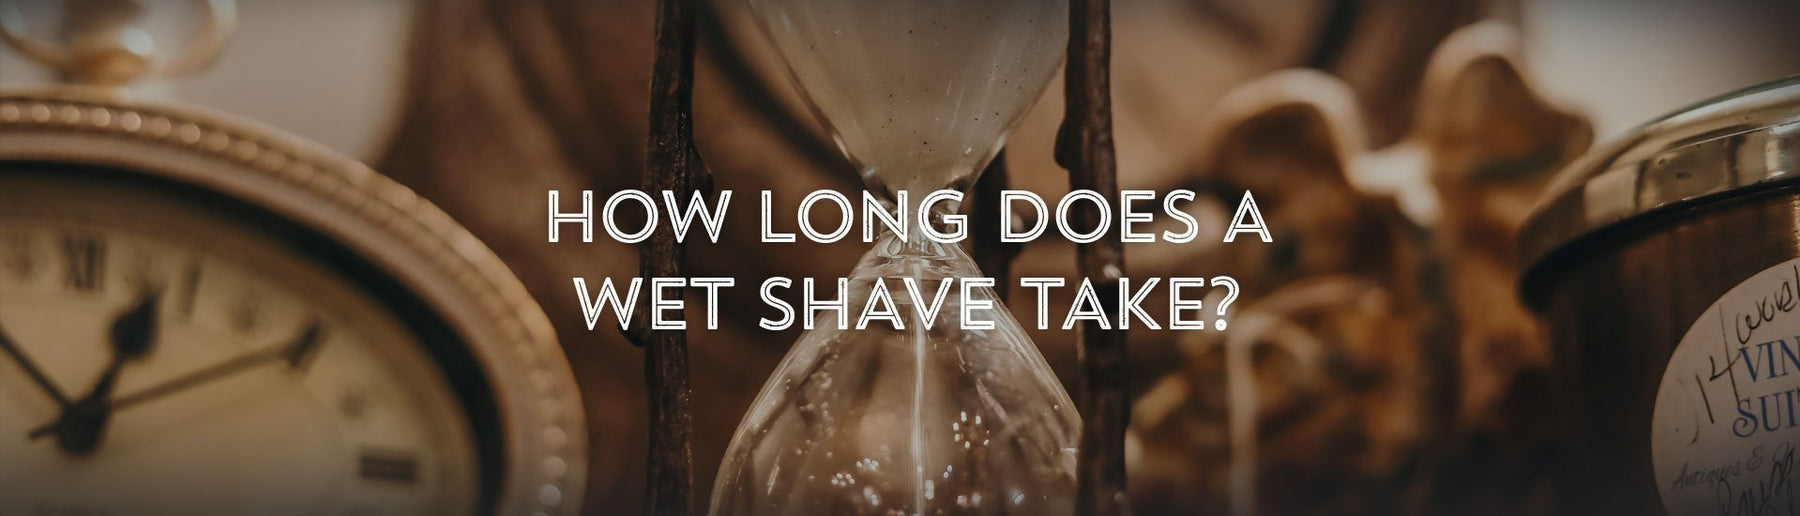 How Long Does a Wet Shave Take?-West Coast Shaving